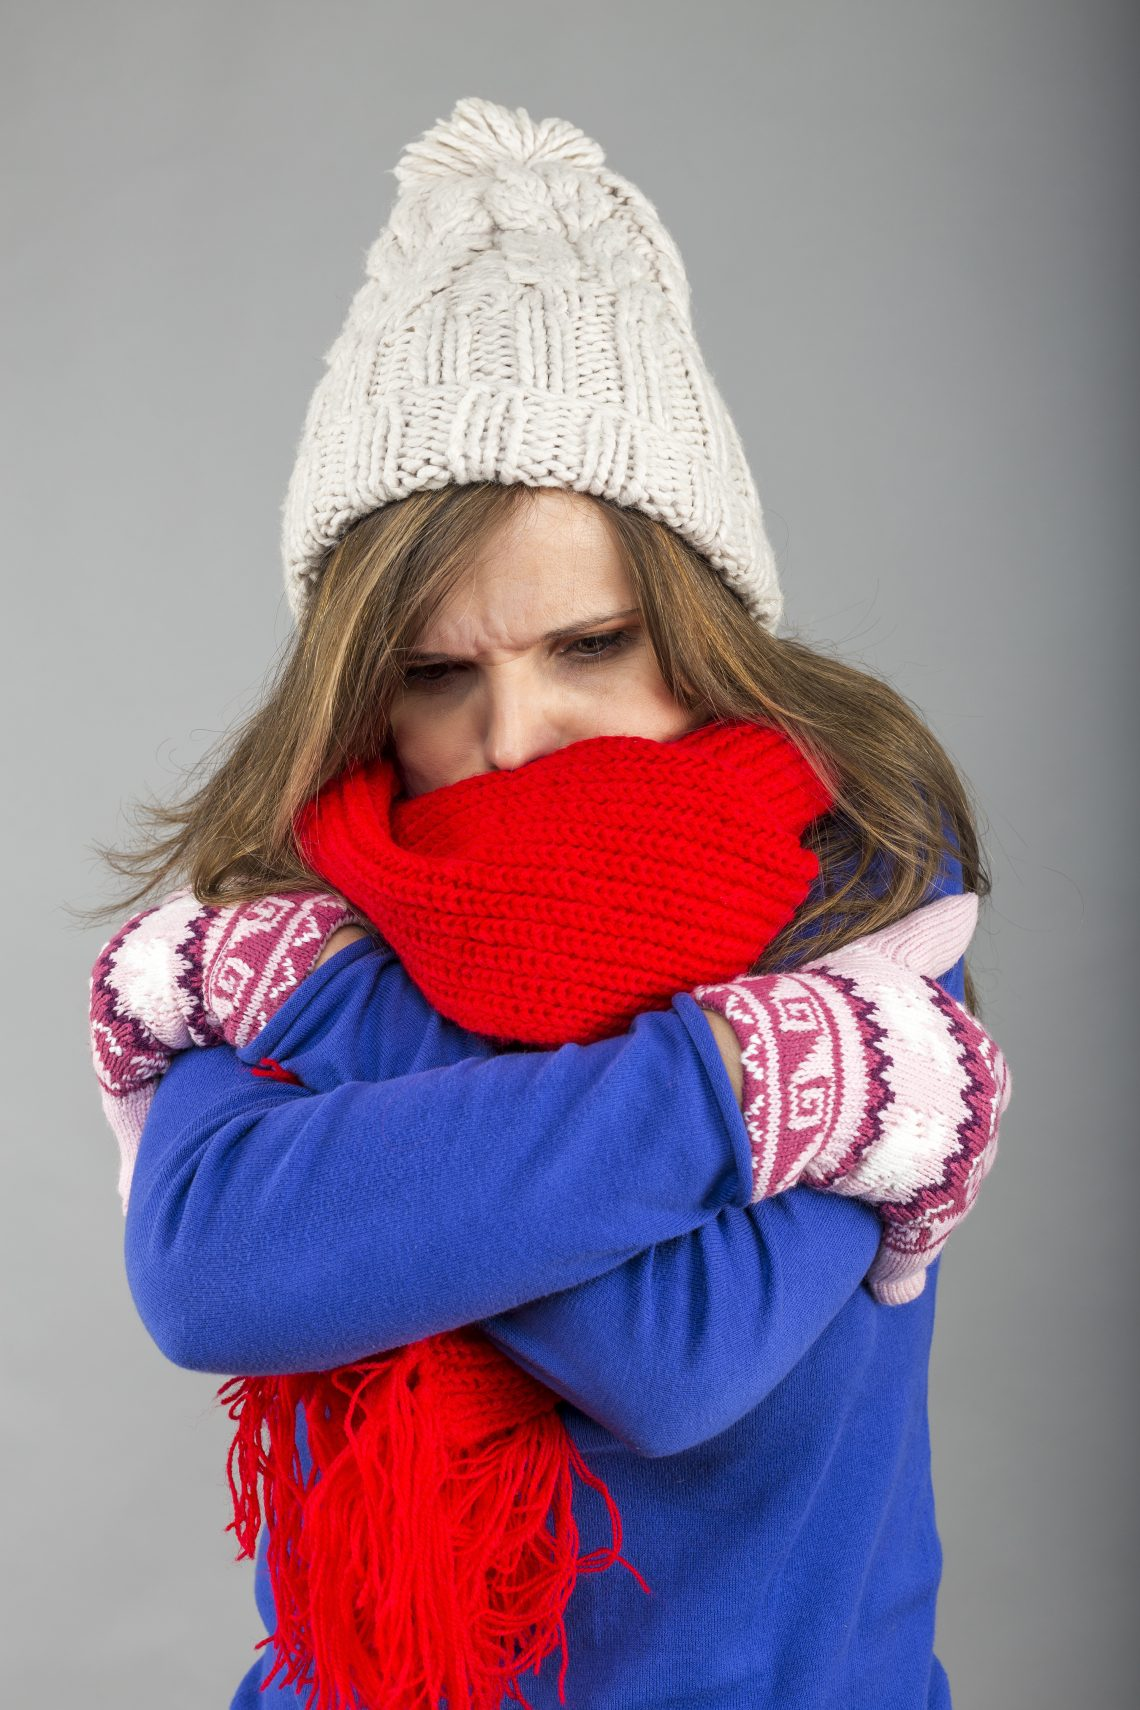 Young woman feeling cold trying to keep warm, shaking and shive